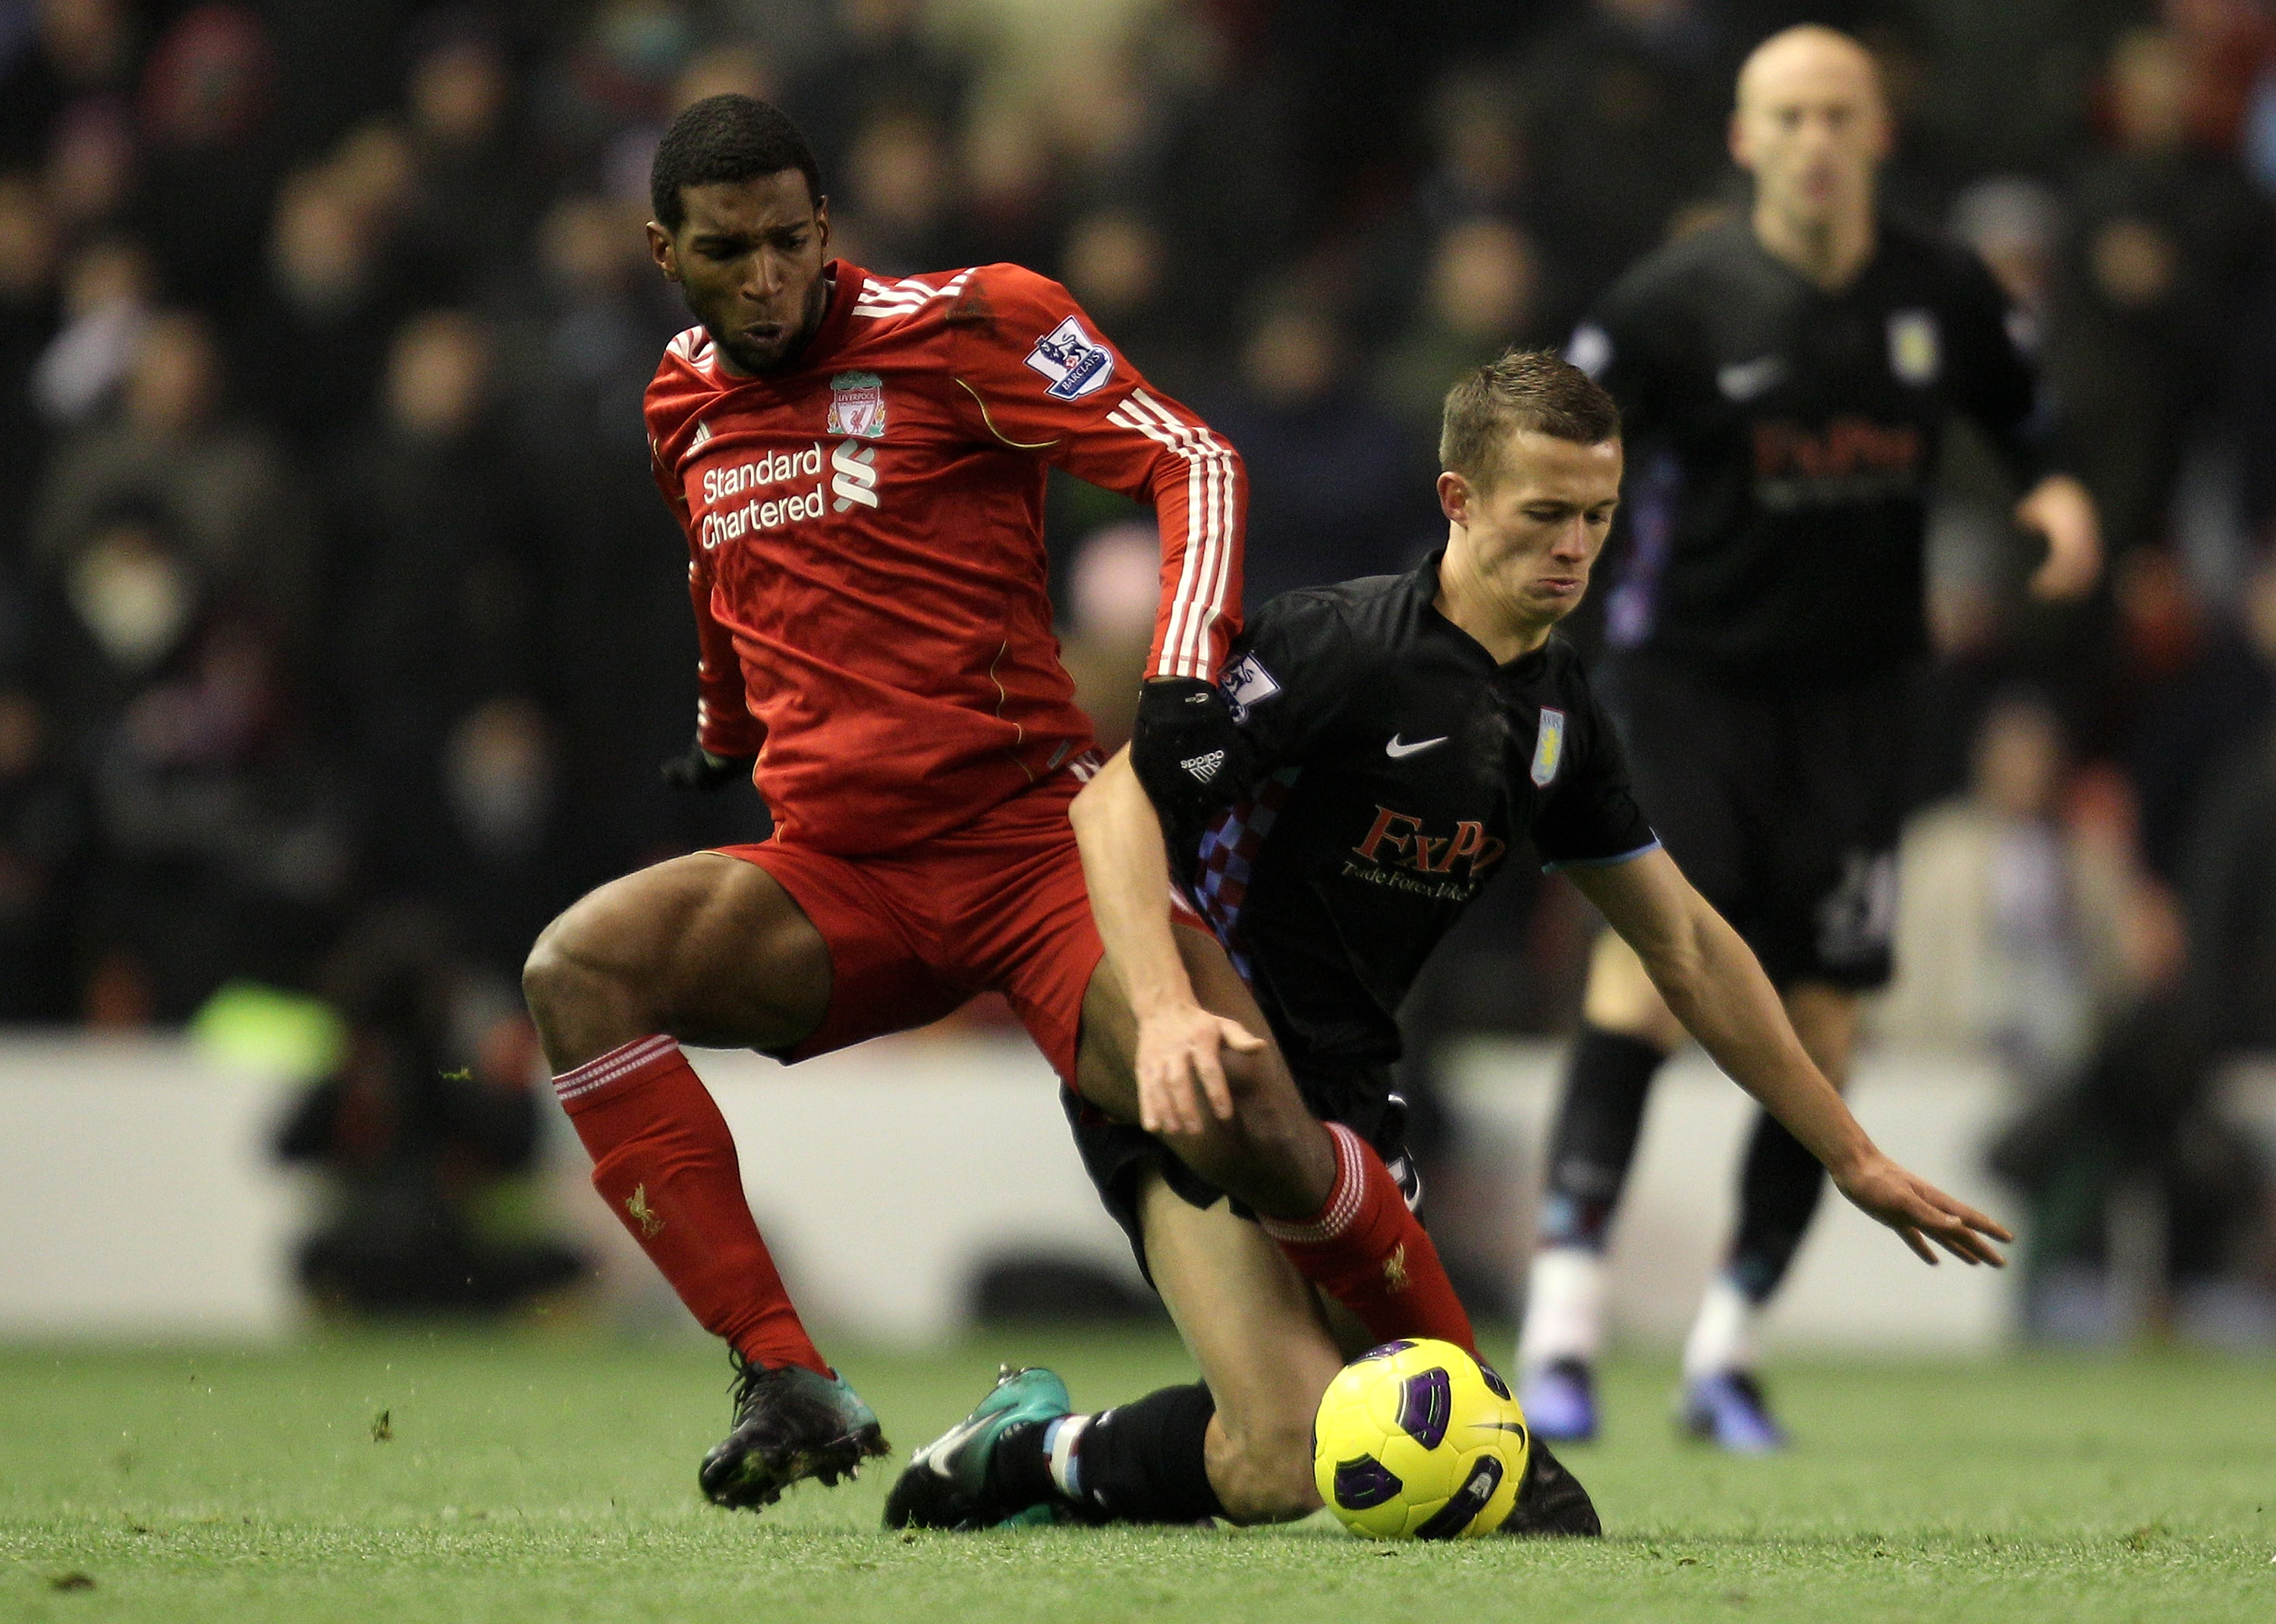 LIVERPOOL, ENGLAND - DECEMBER 06:  Ryan Babel of Liverpool tangles with Jonathan Hogg of Aston Villa during the Barclays Premier League match between Liverpool and Aston Villa at Anfield on December 6, 2010 in Liverpool, England.  (Photo by Mark Thompson/